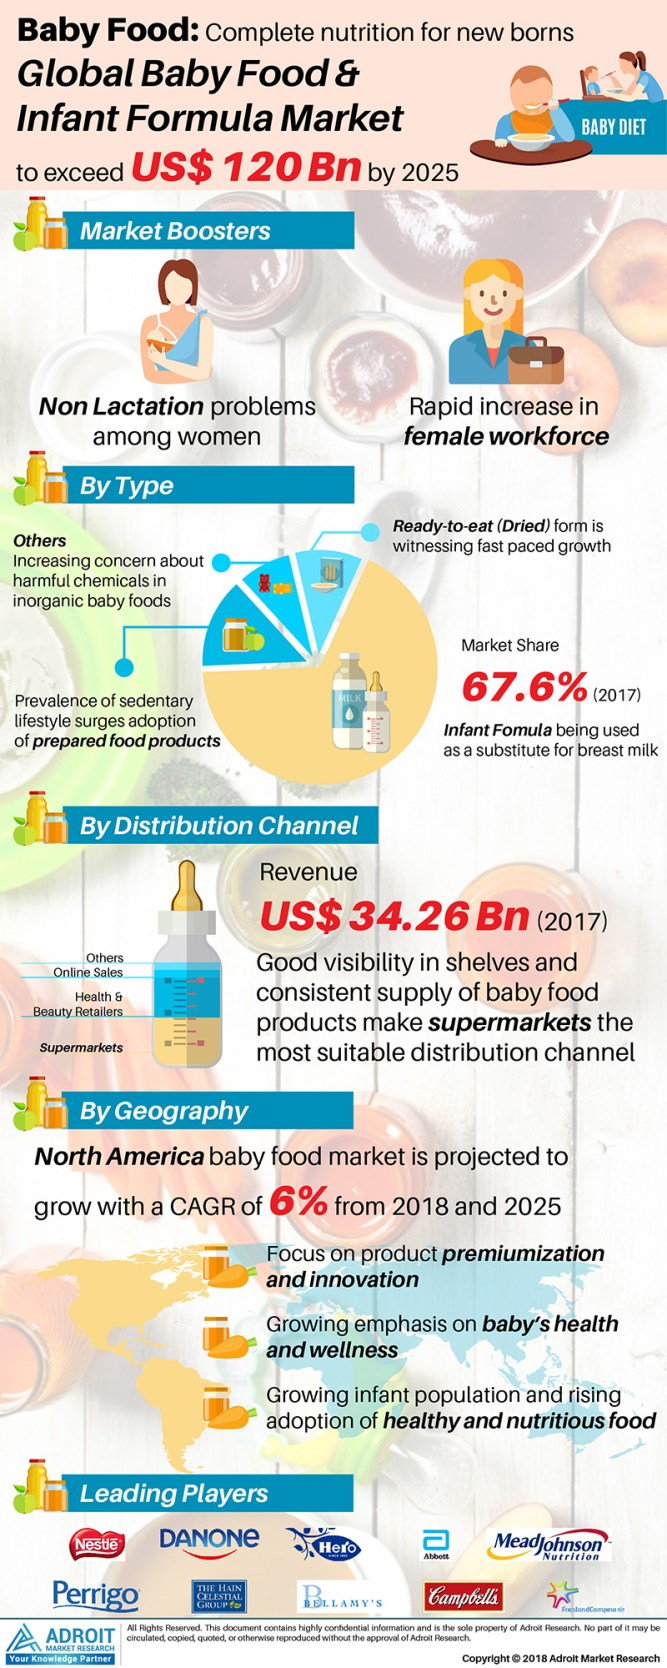 Global Baby Food and Infant Formula Market 2019 Demand Overview by Nutritional Variations, Type, Application, Latest Brands, Top Company, Consumption, Growth & Forecasts 2025 1